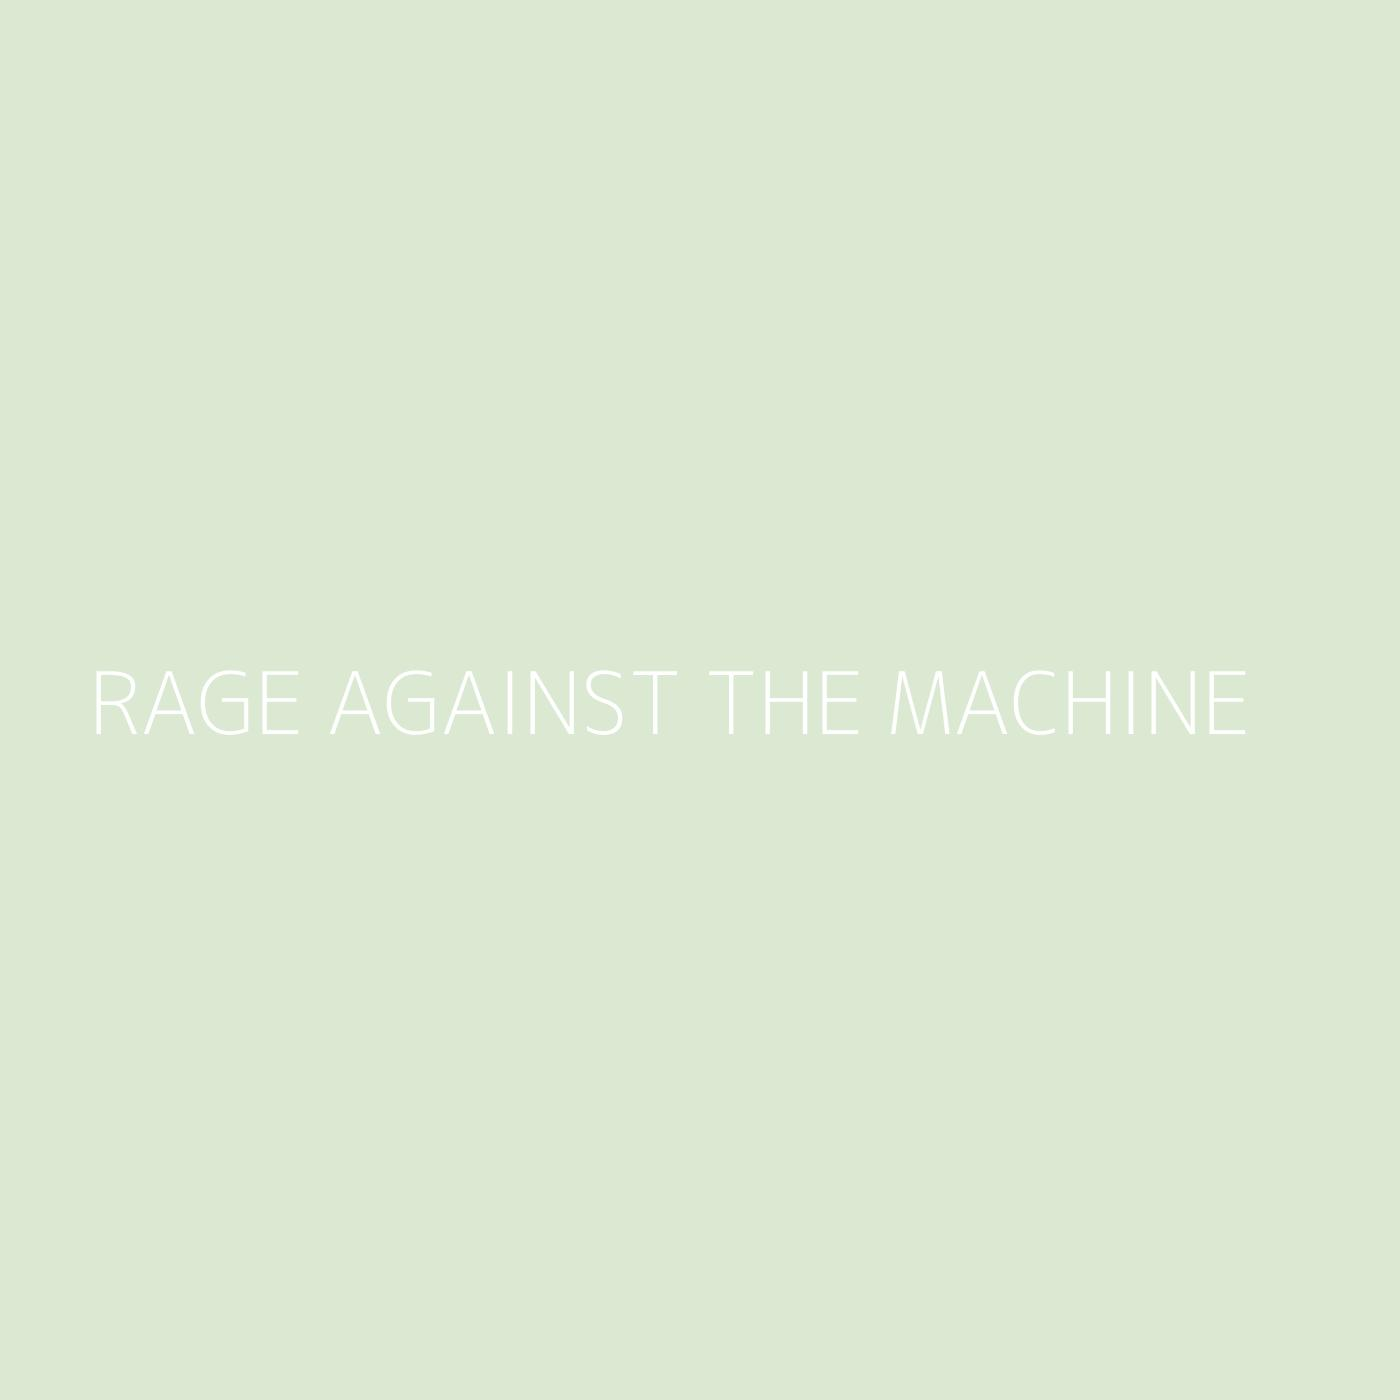 Rage Against The Machine Playlist Artwork